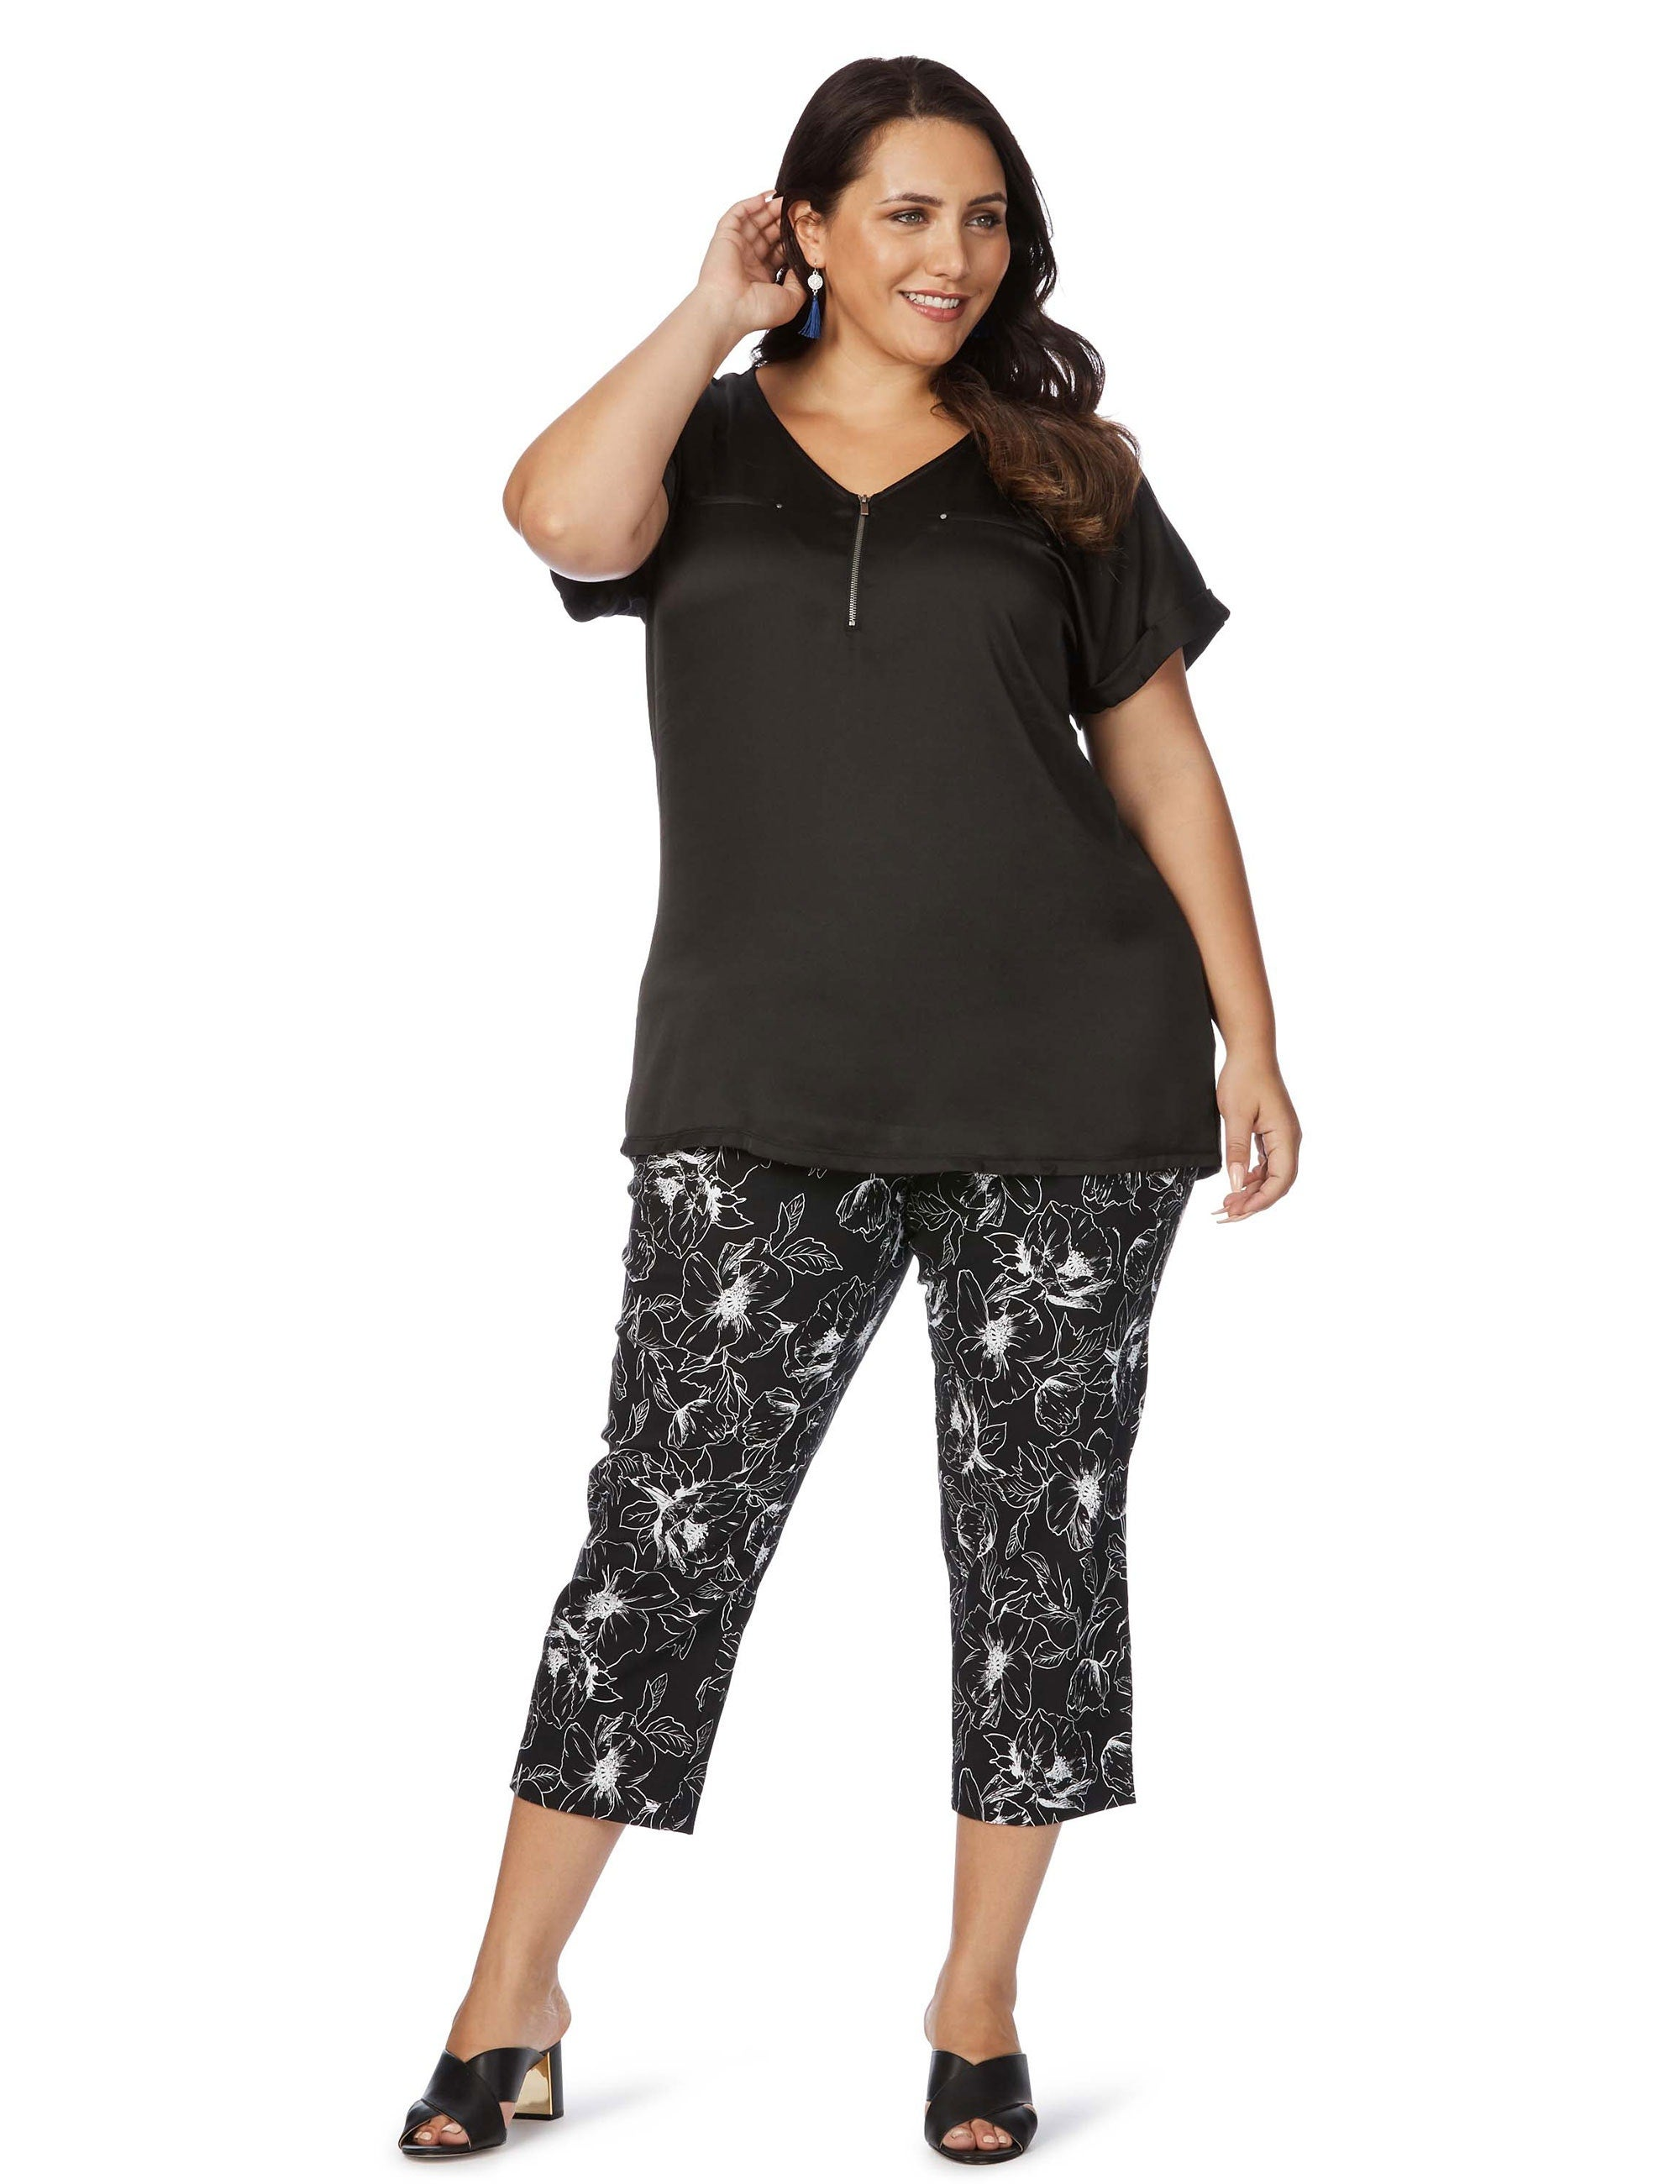 Mono B: Plus Size Activewear Business Is on the Rise